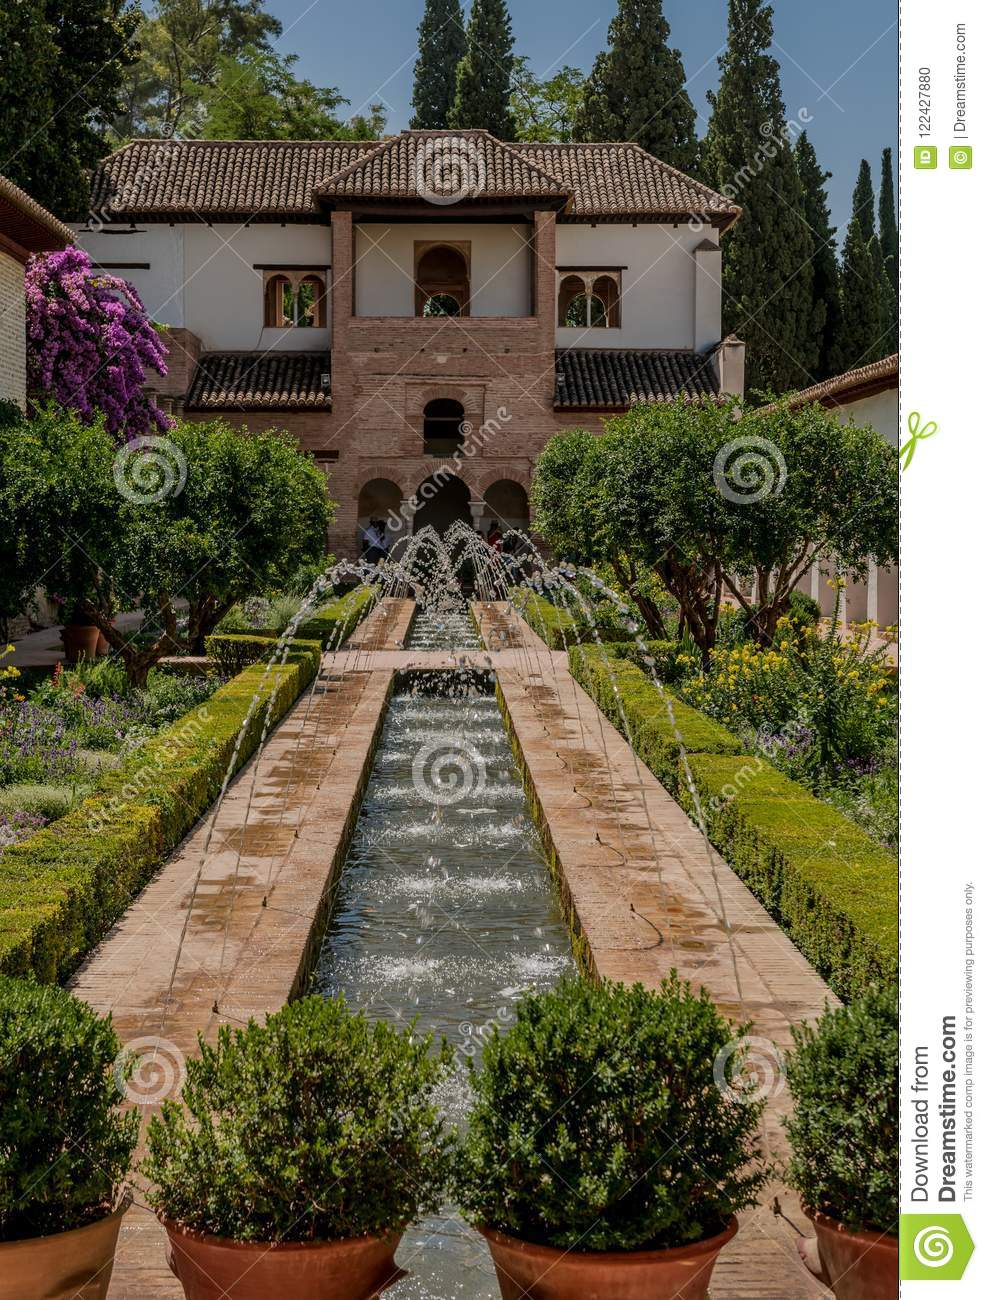 Alhambra Palace Garden In Granada, Spain Stock Photo - Image of ...